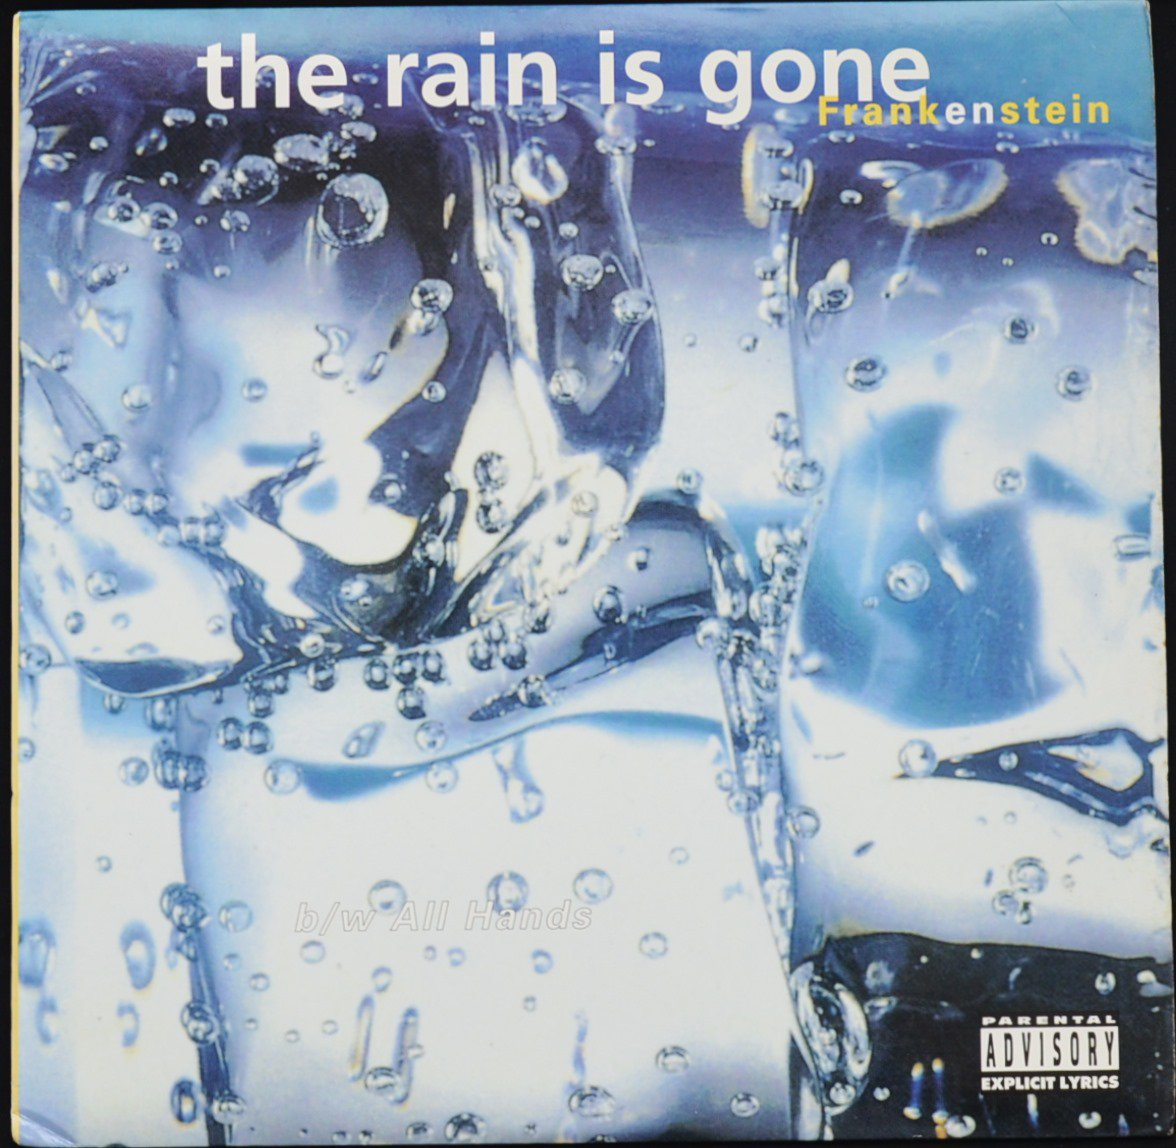 FRANKENSTEIN ‎/ THE RAIN IS GONE / ALL HANDS (12